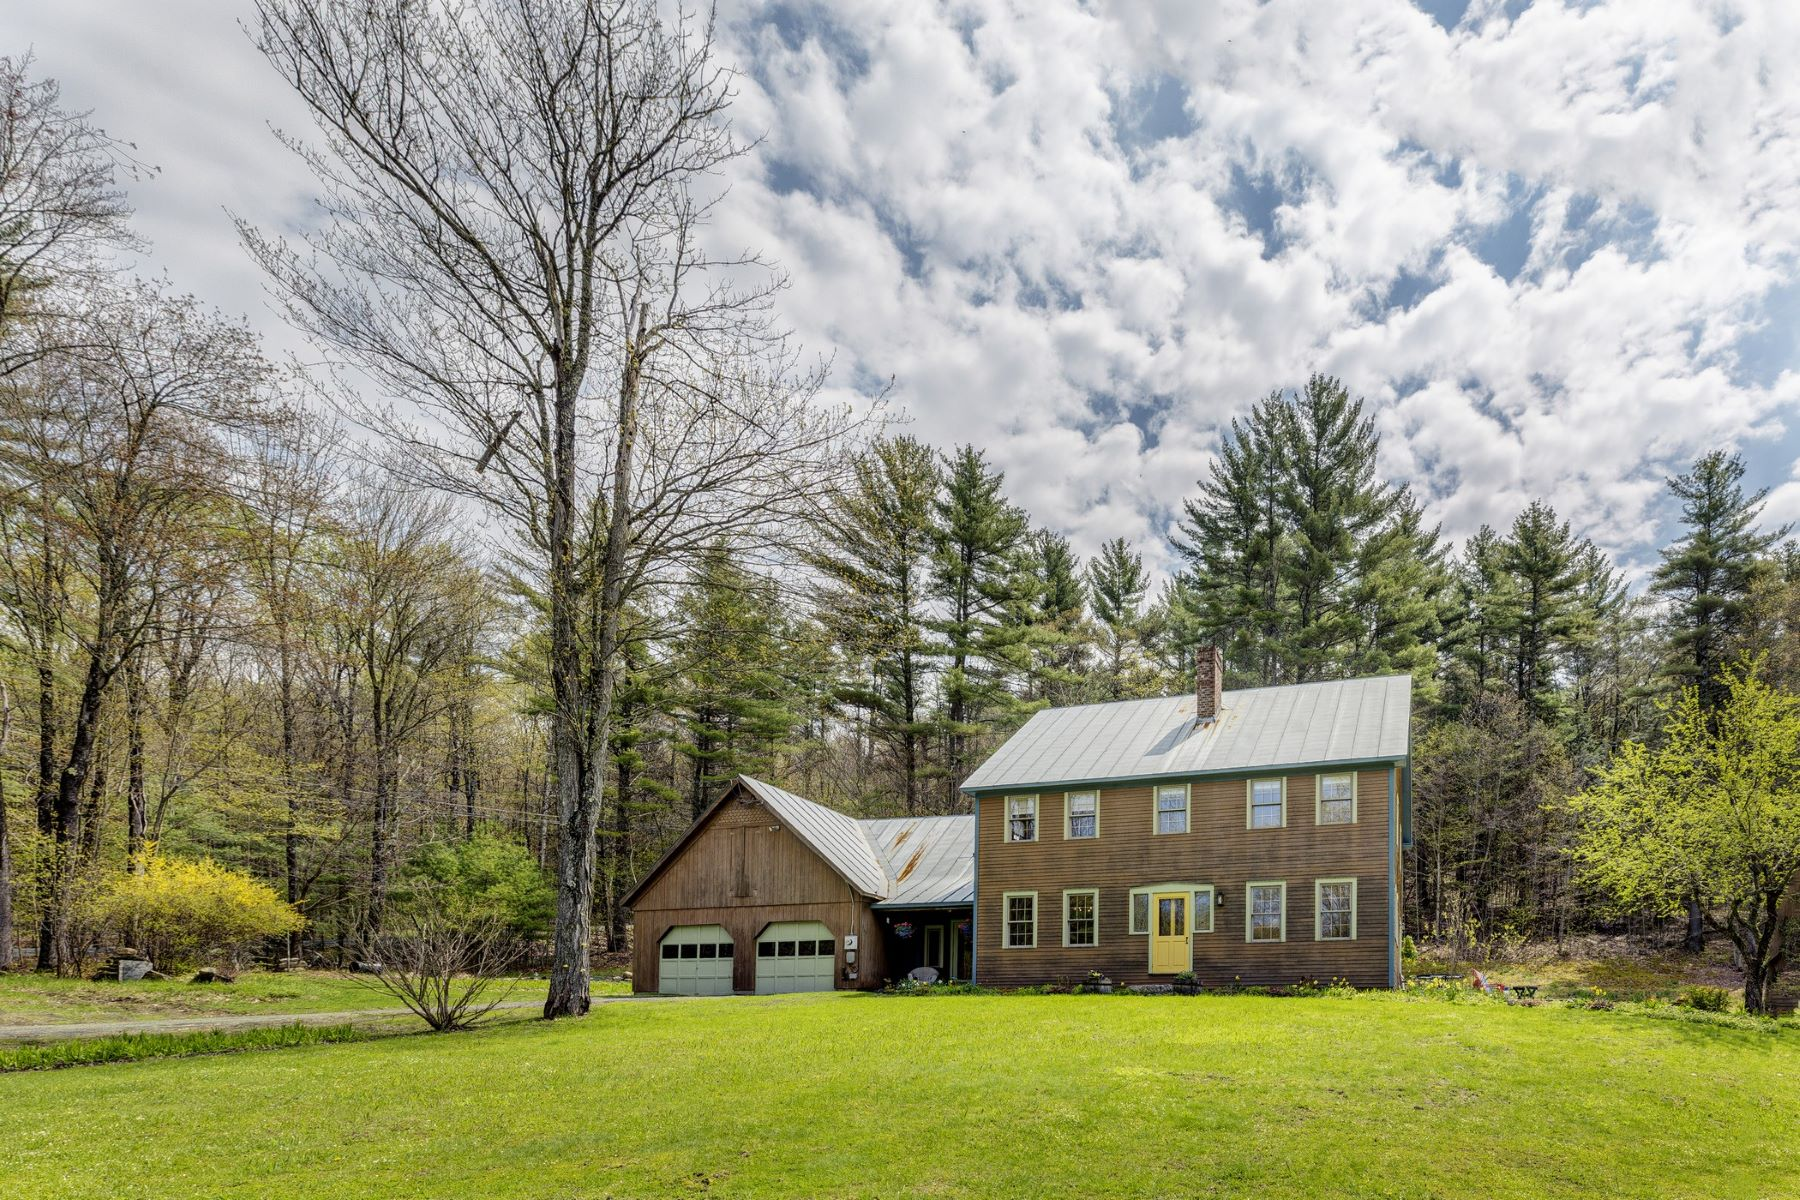 Single Family Homes for Sale at 38 Birch Hill Lane, Norwich 38 Birch Hill Ln Norwich, Vermont 05055 United States